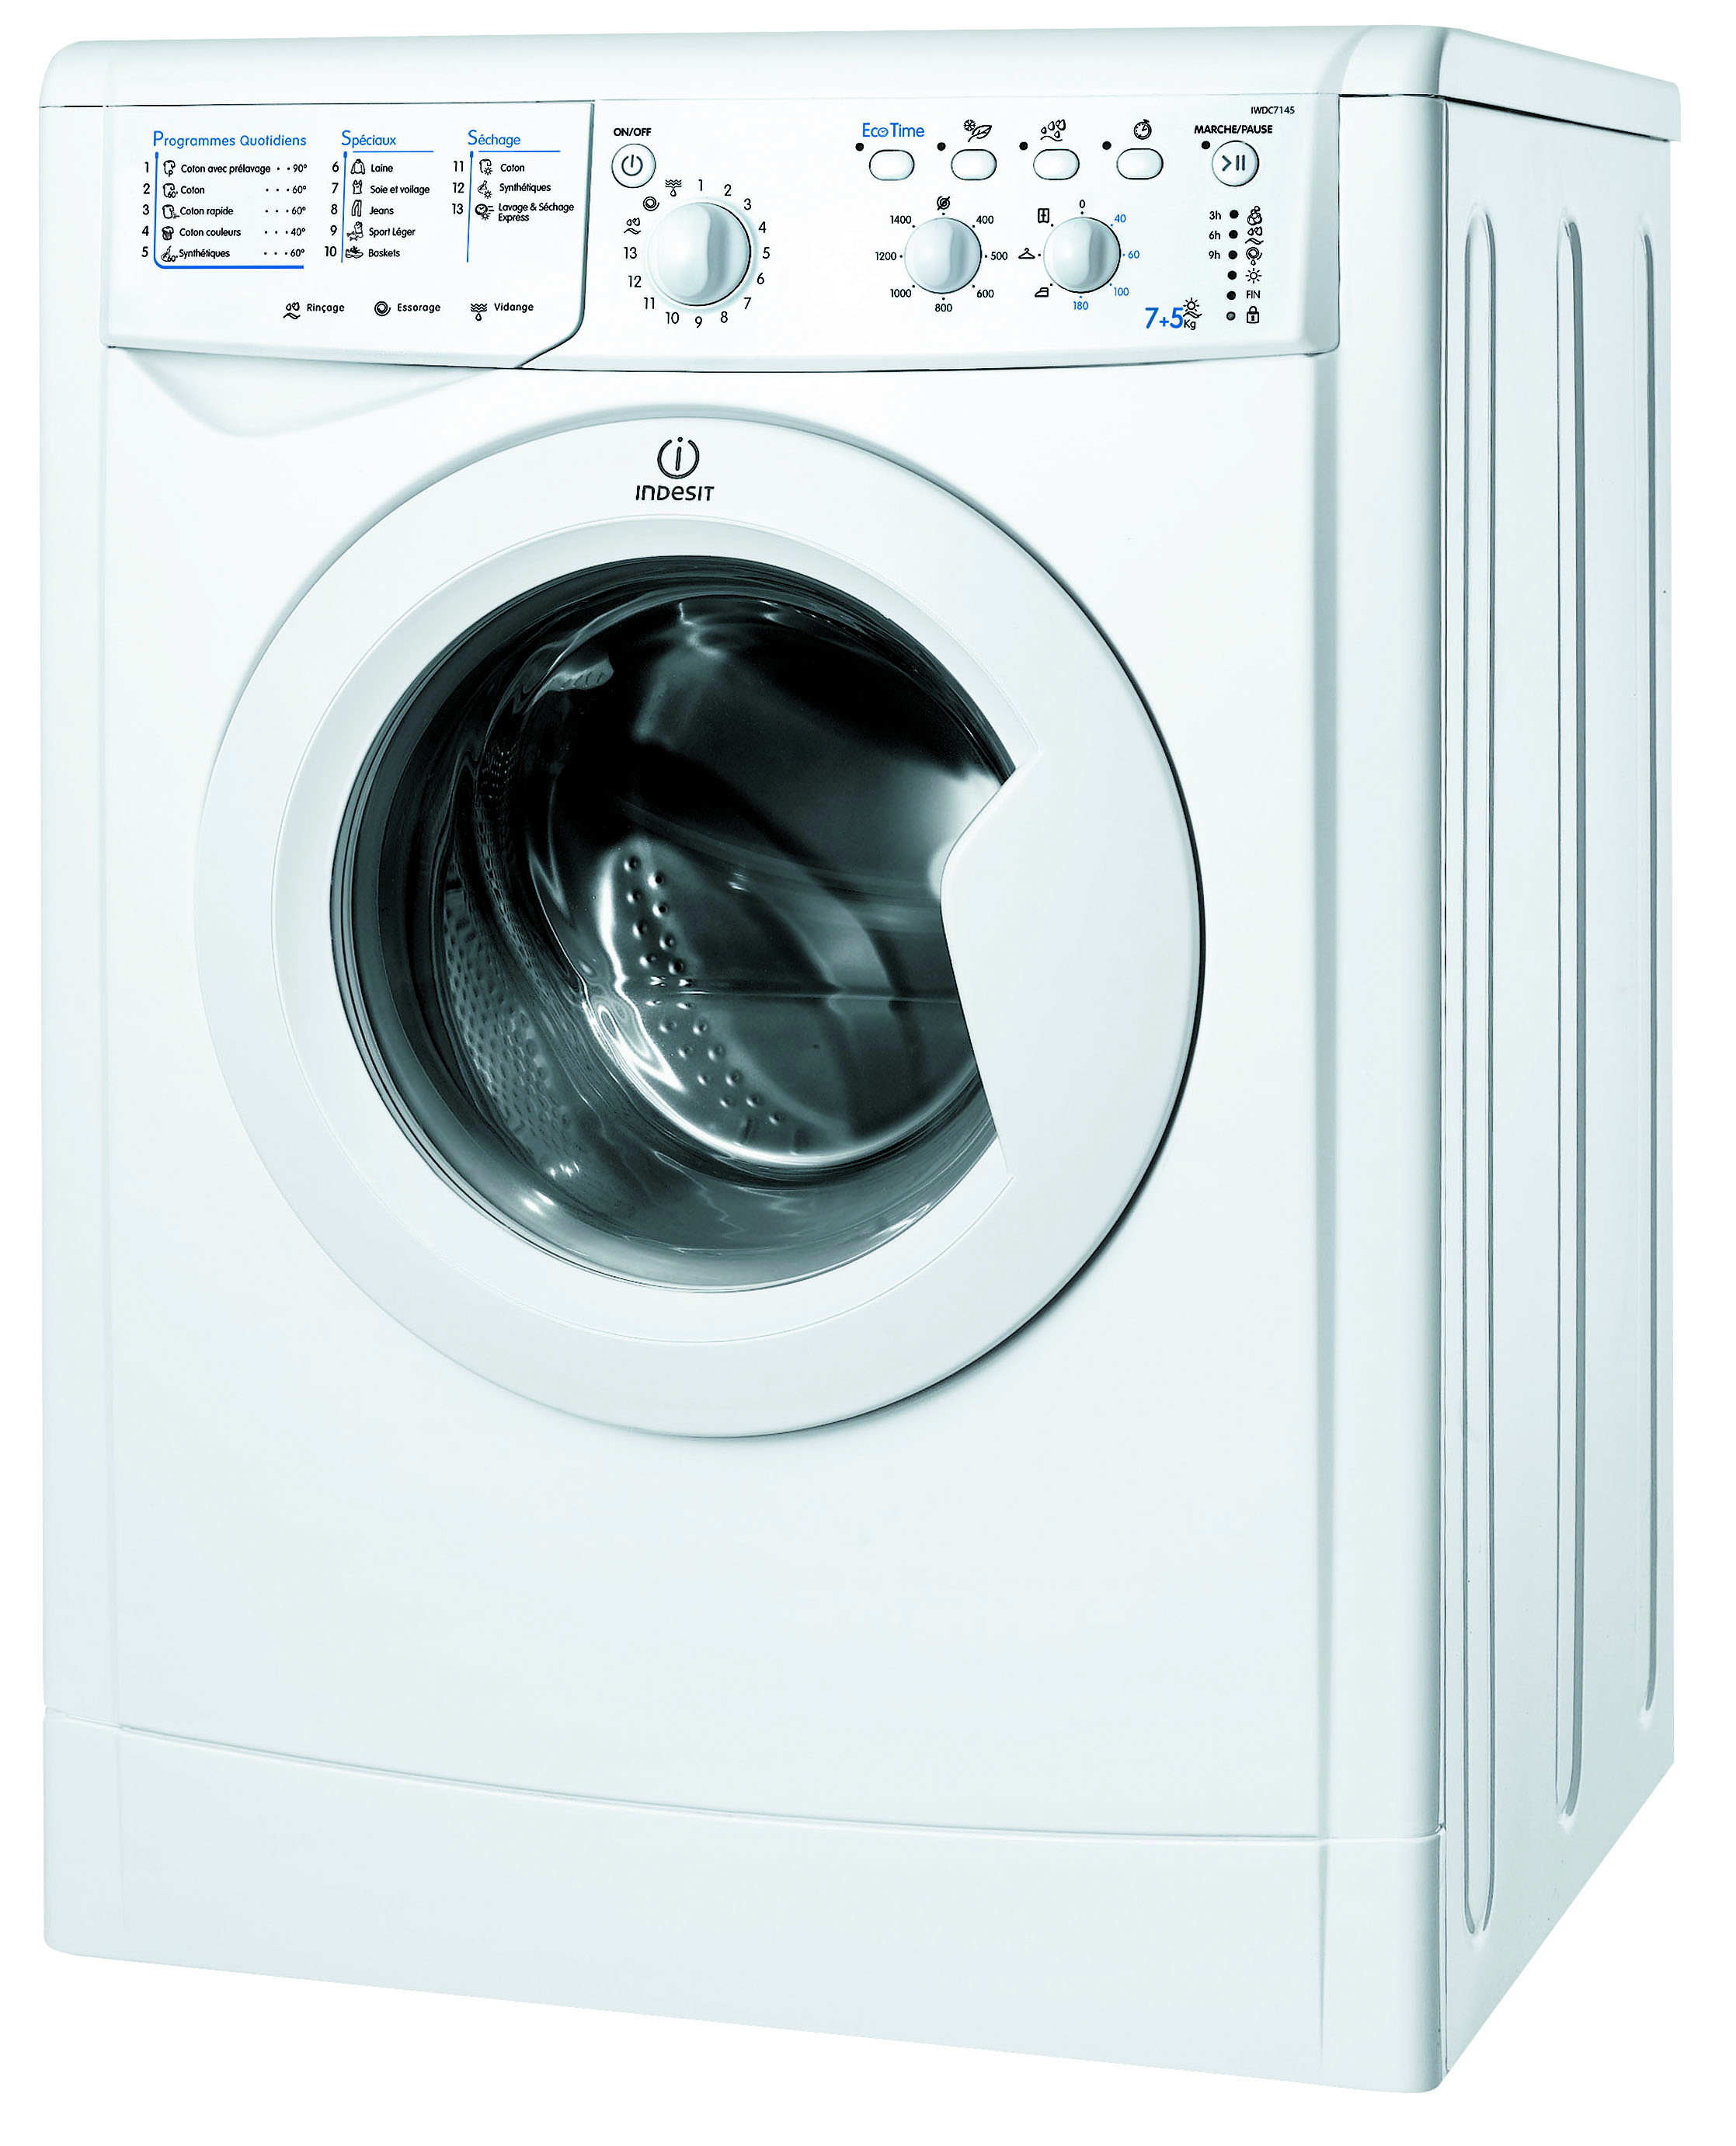 Indesit Iwdc 6125 Brand New Indesit And Hotpoint White Goods From France